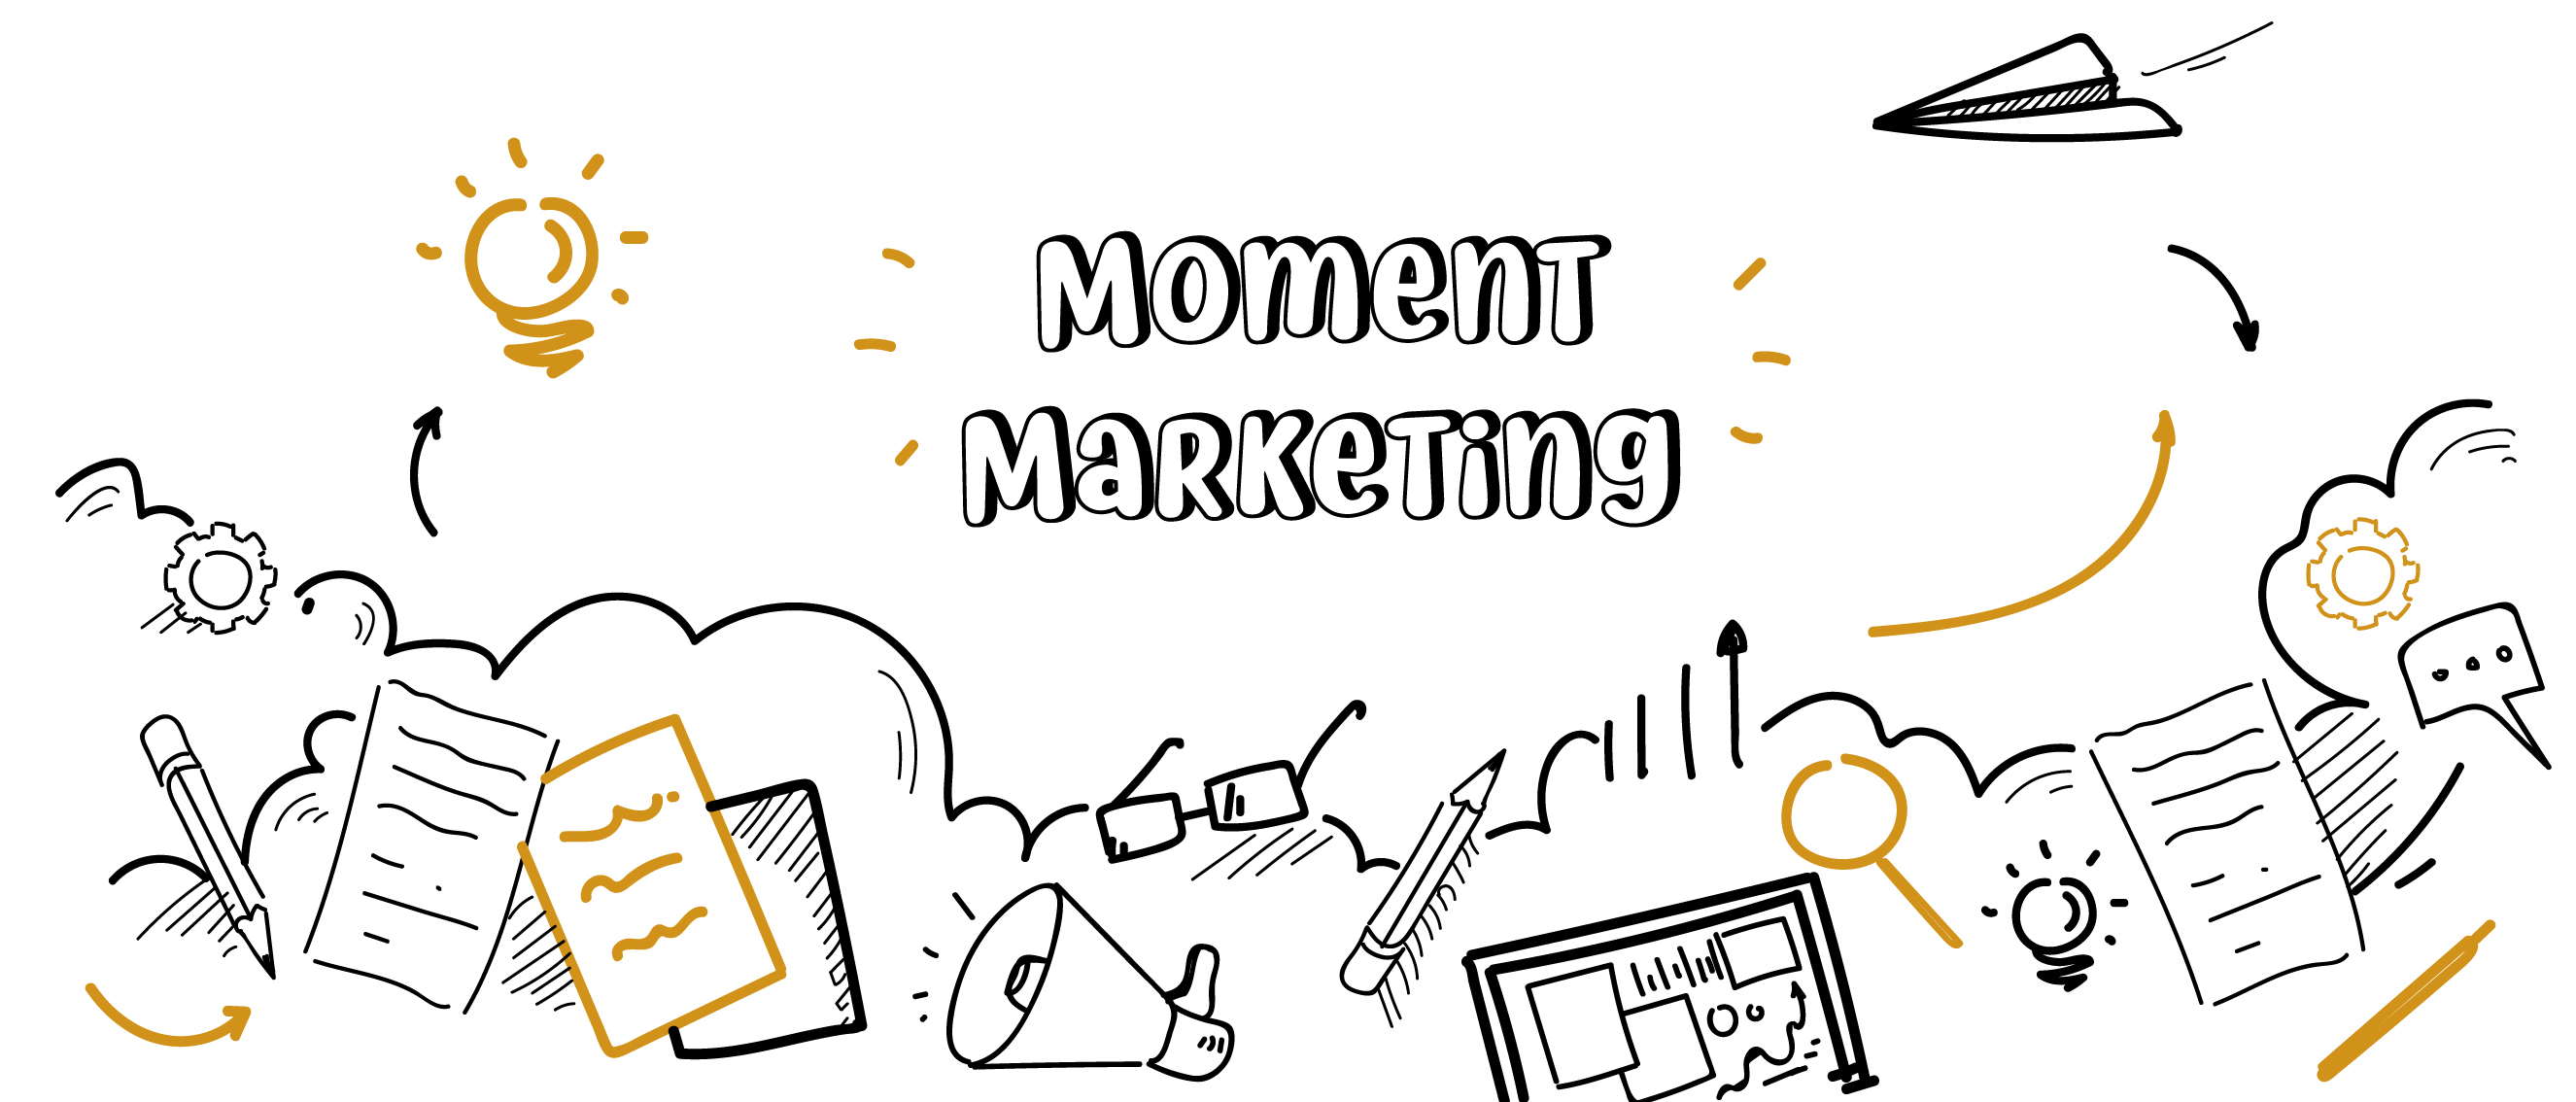 Brands capitalize on moment marketing